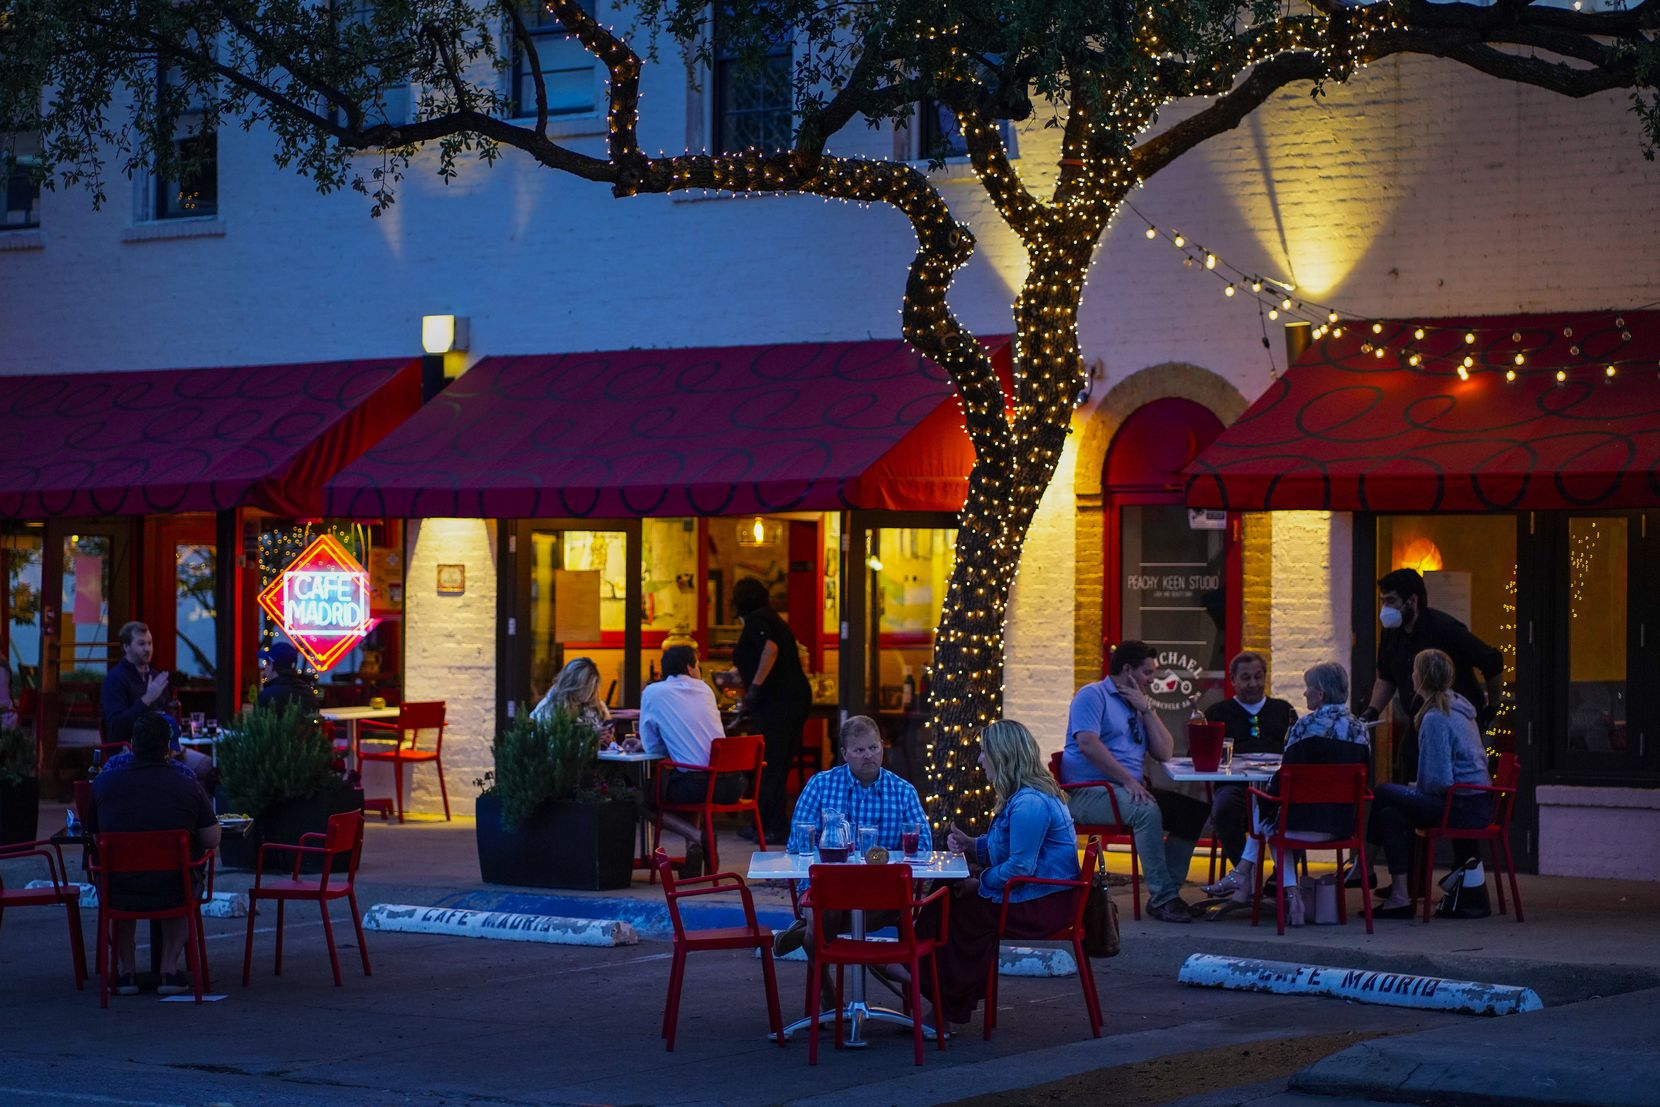 Patrons had dinner on tables spread out into the parking spaces in front of Cafe Madrid on Travis Street in Dallas on May 8, 2020. With restaurants offering dine-in services restricted to 25% occupancy and parties seated at least 6 feet apart, the restaurant expanded seating into the parking area.